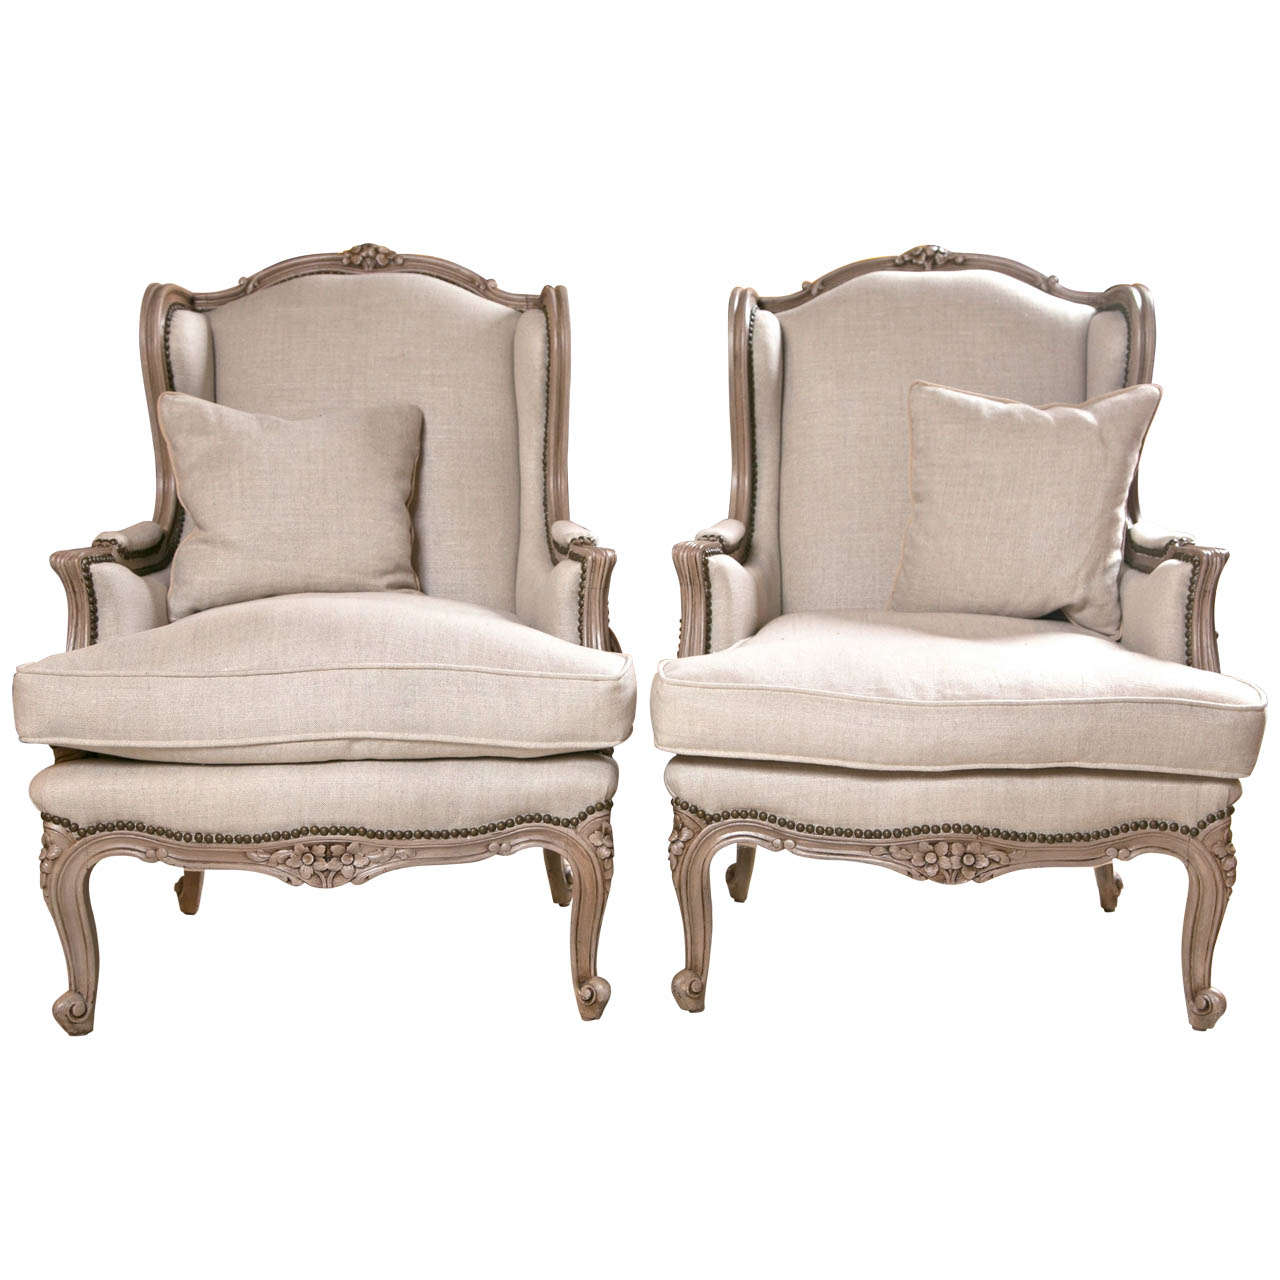 Pair of French Wingback Chairs In Linen Upholstery with  : X from www.1stdibs.com size 1280 x 1280 jpeg 102kB